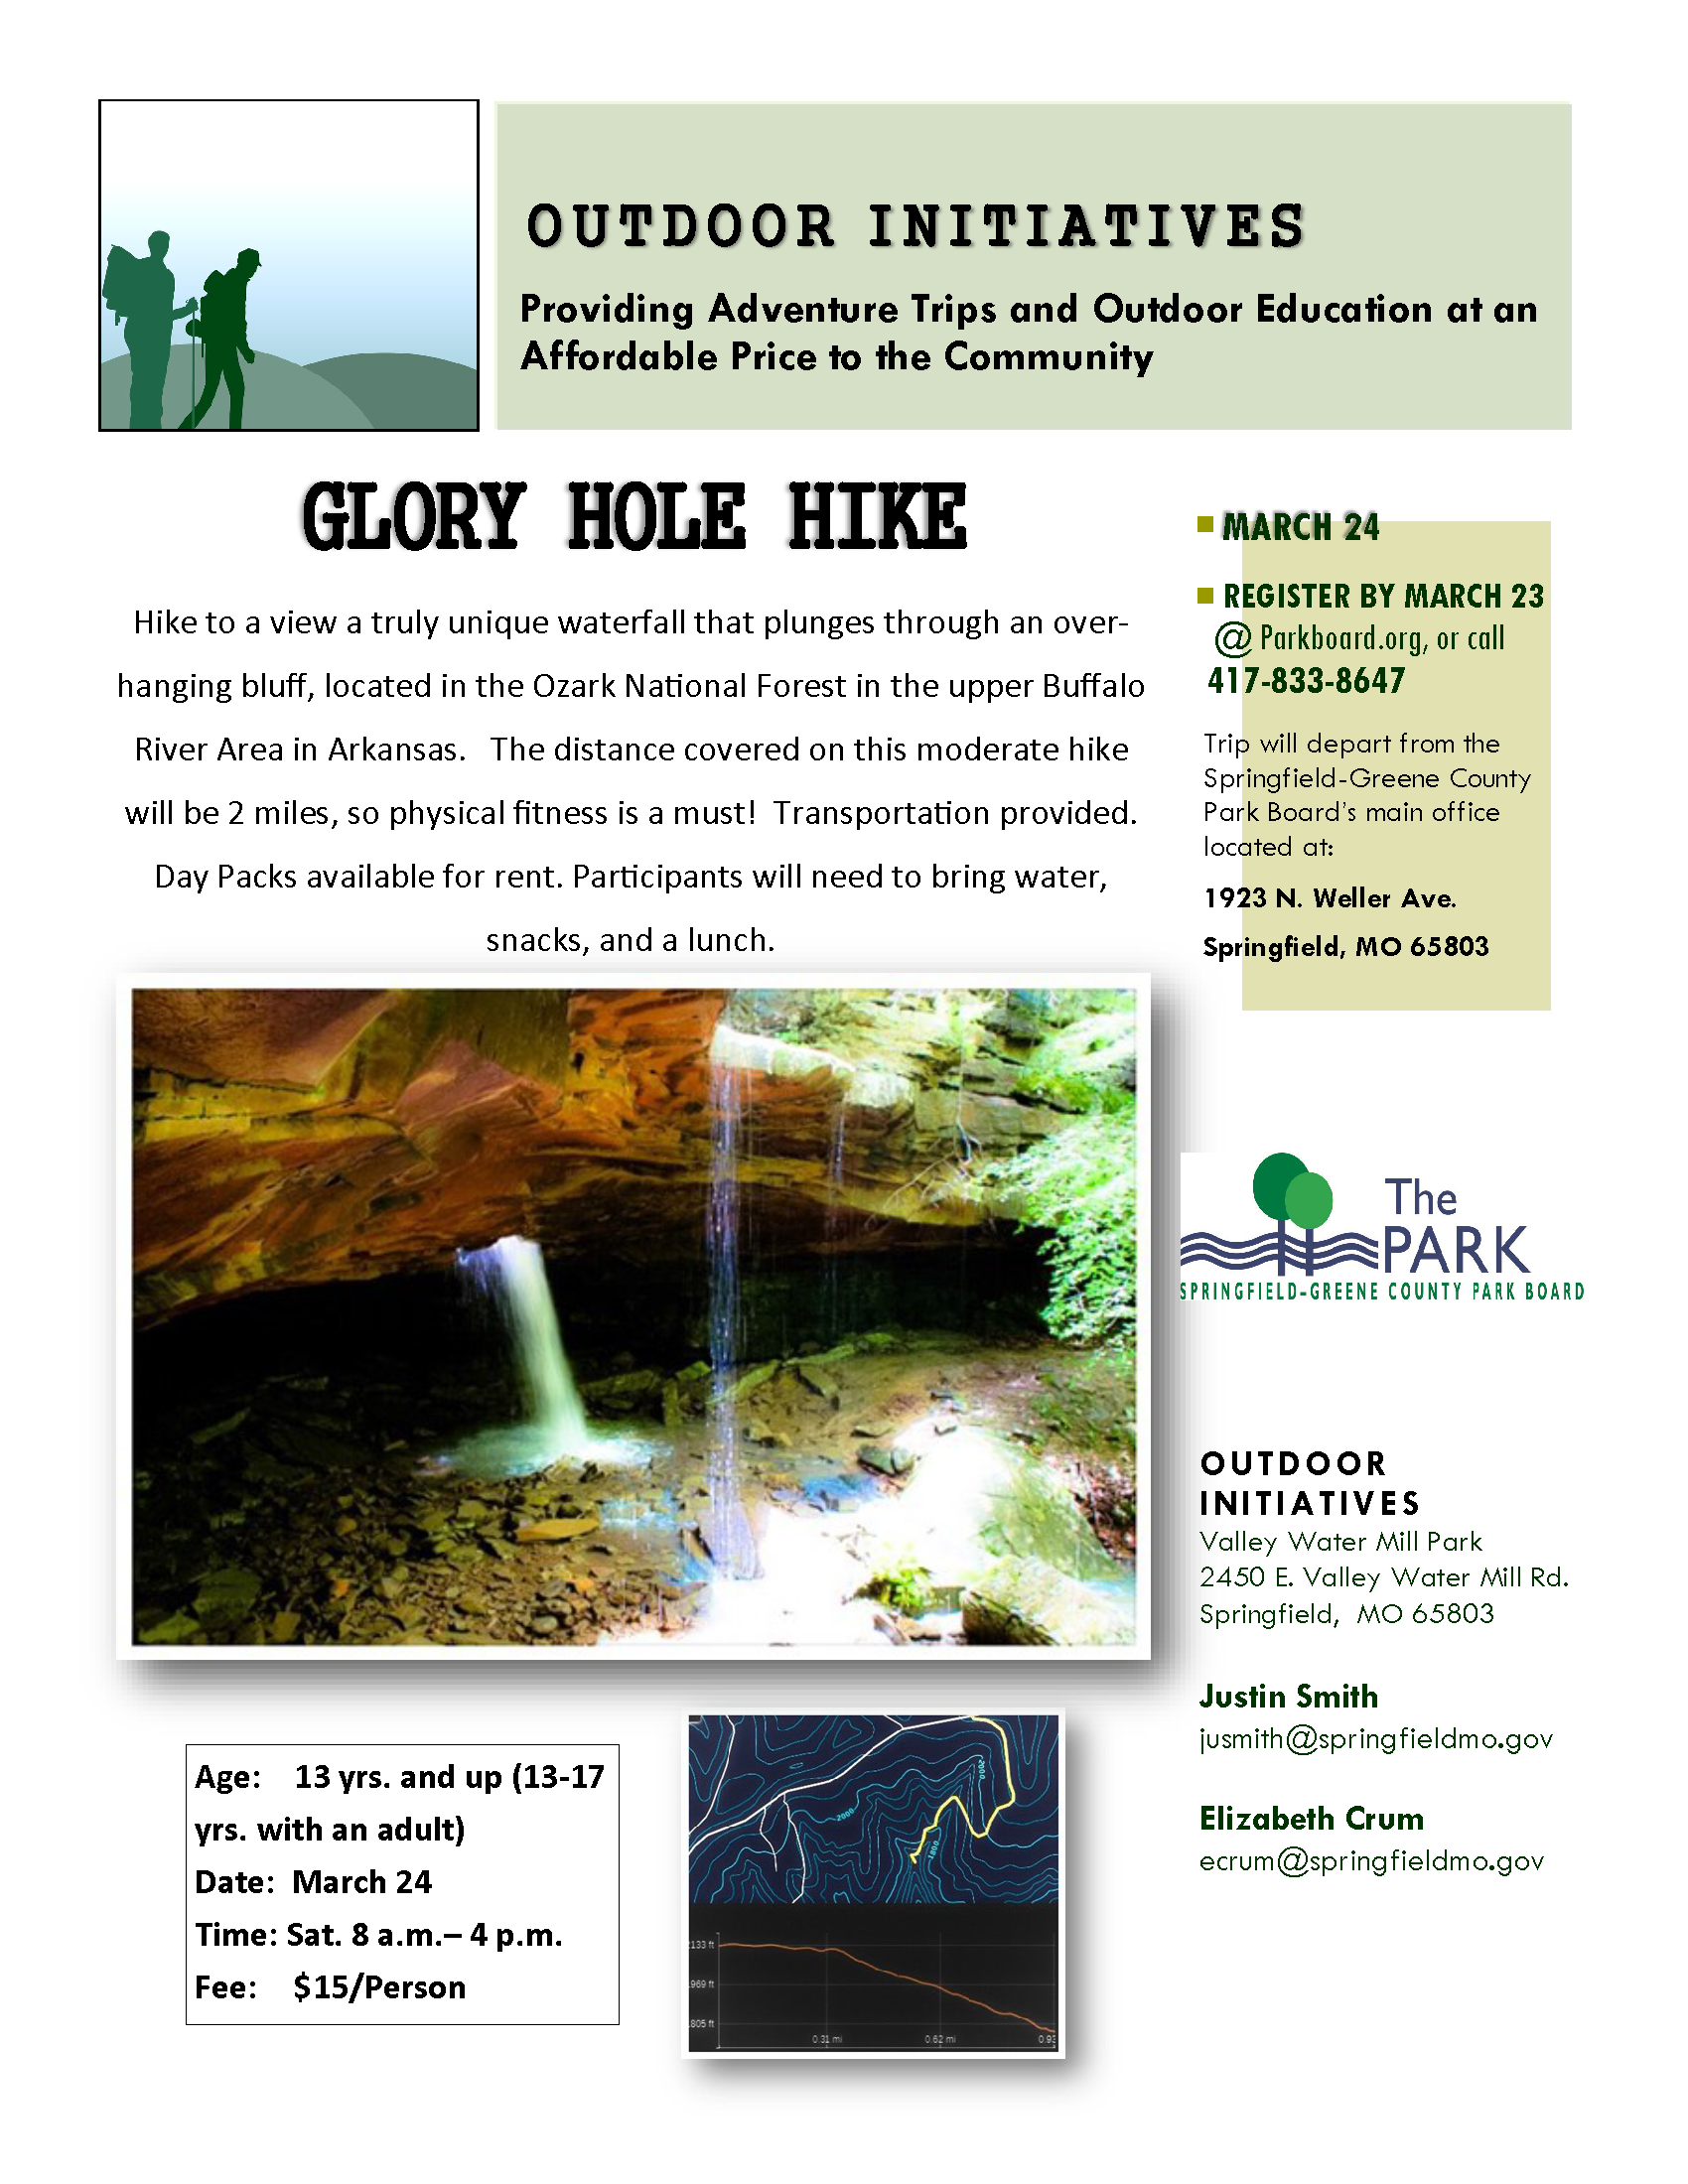 Glory Hole Hike